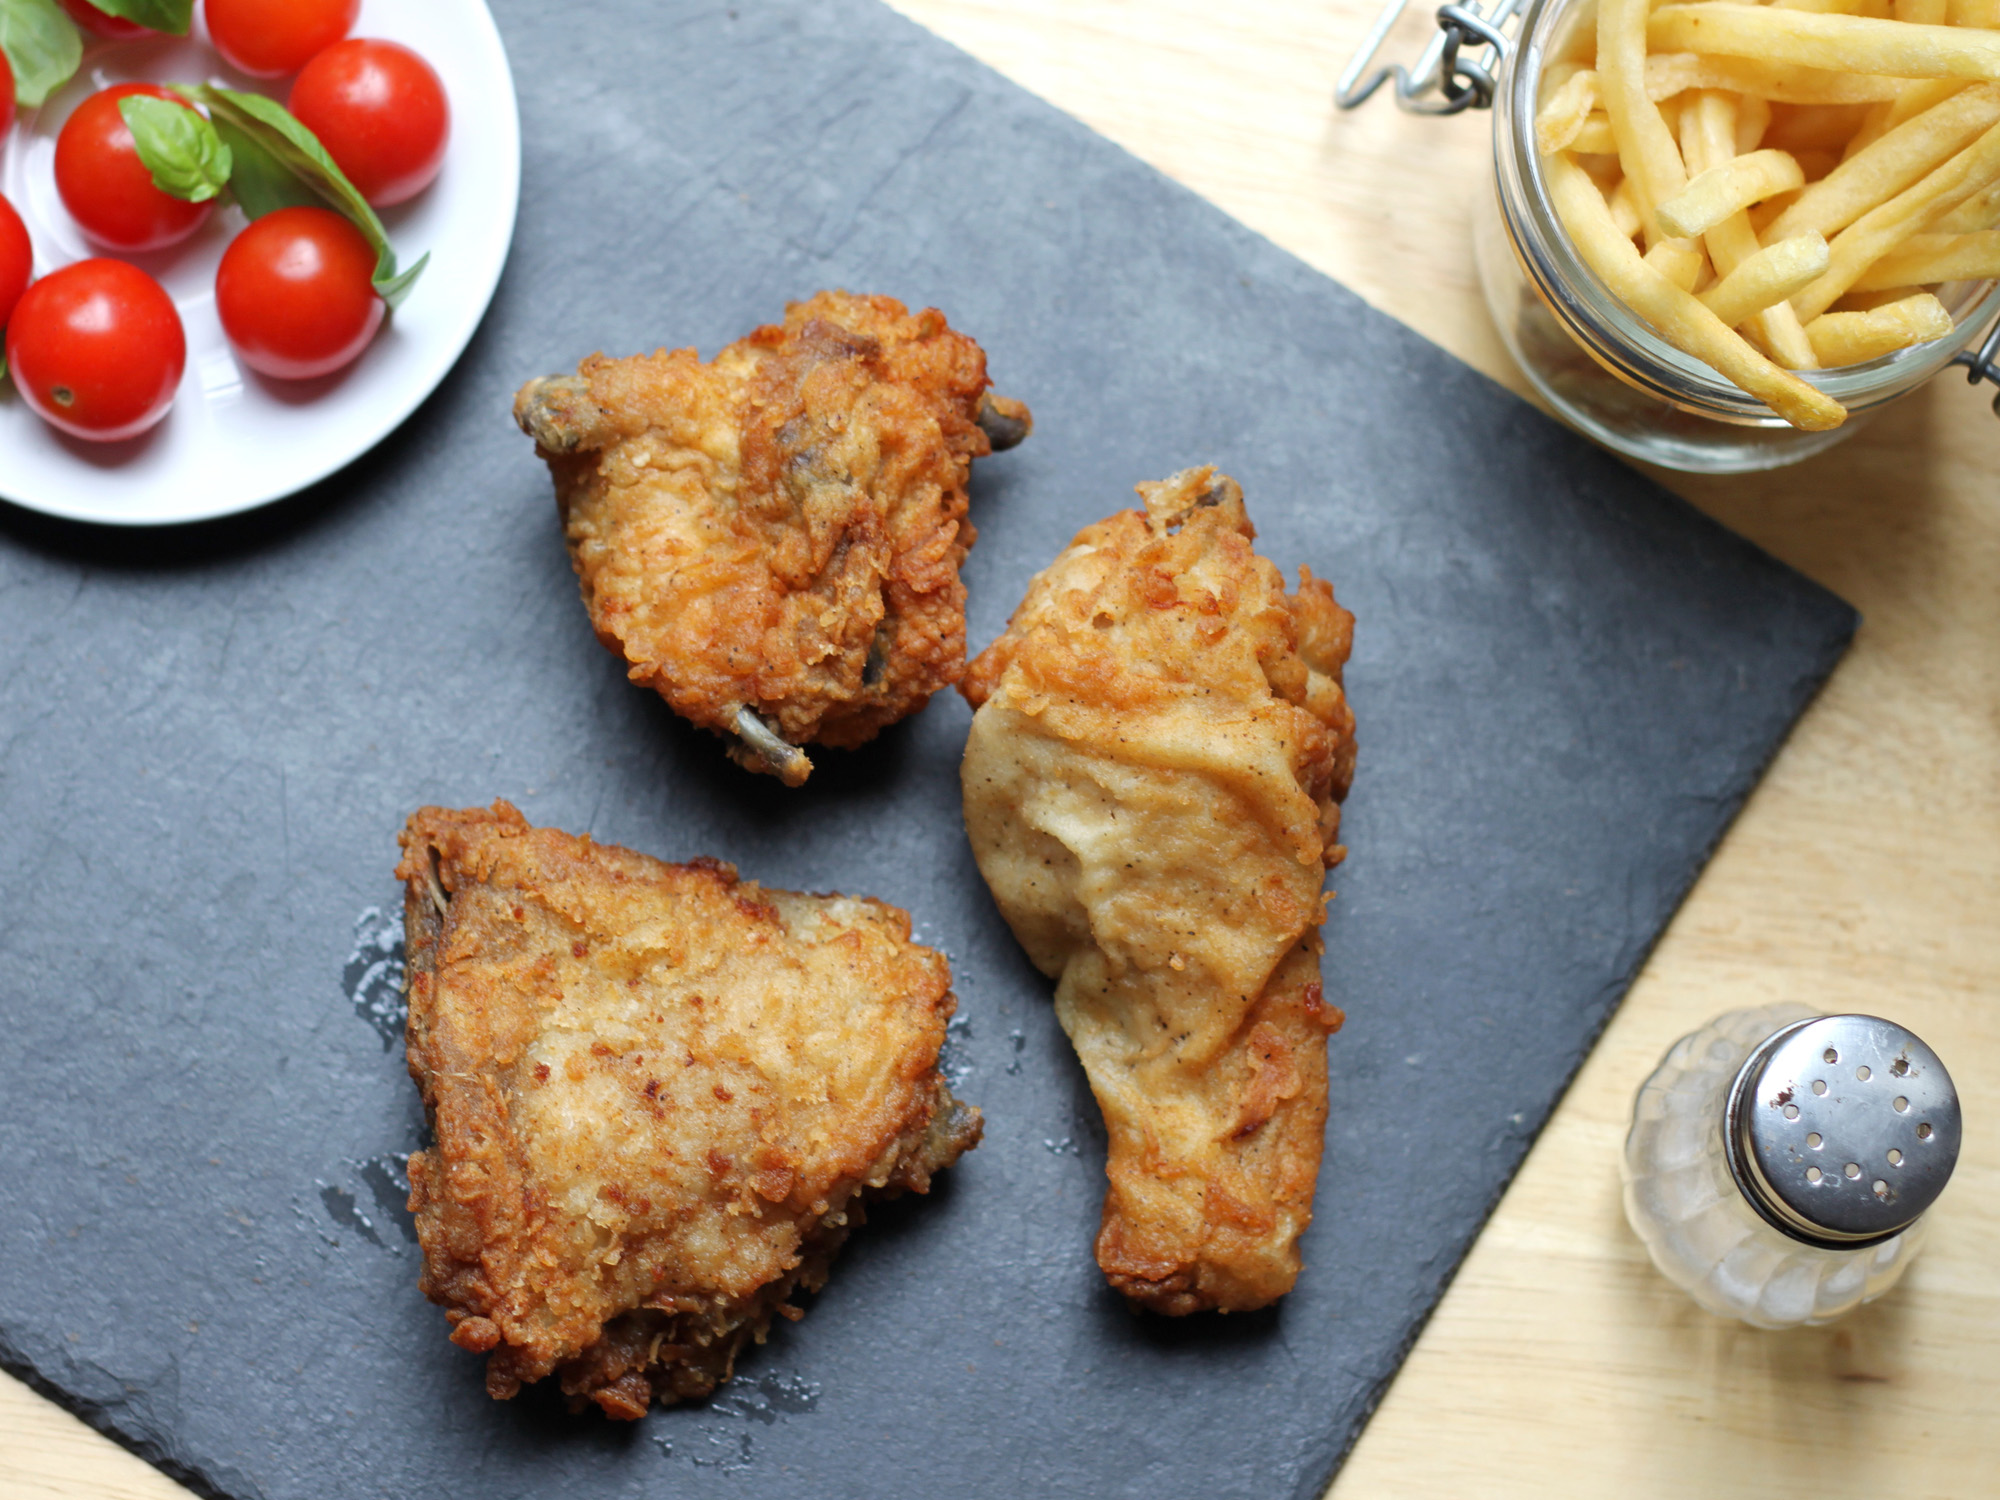 Fried chicken recipes genius kitchen forumfinder Choice Image